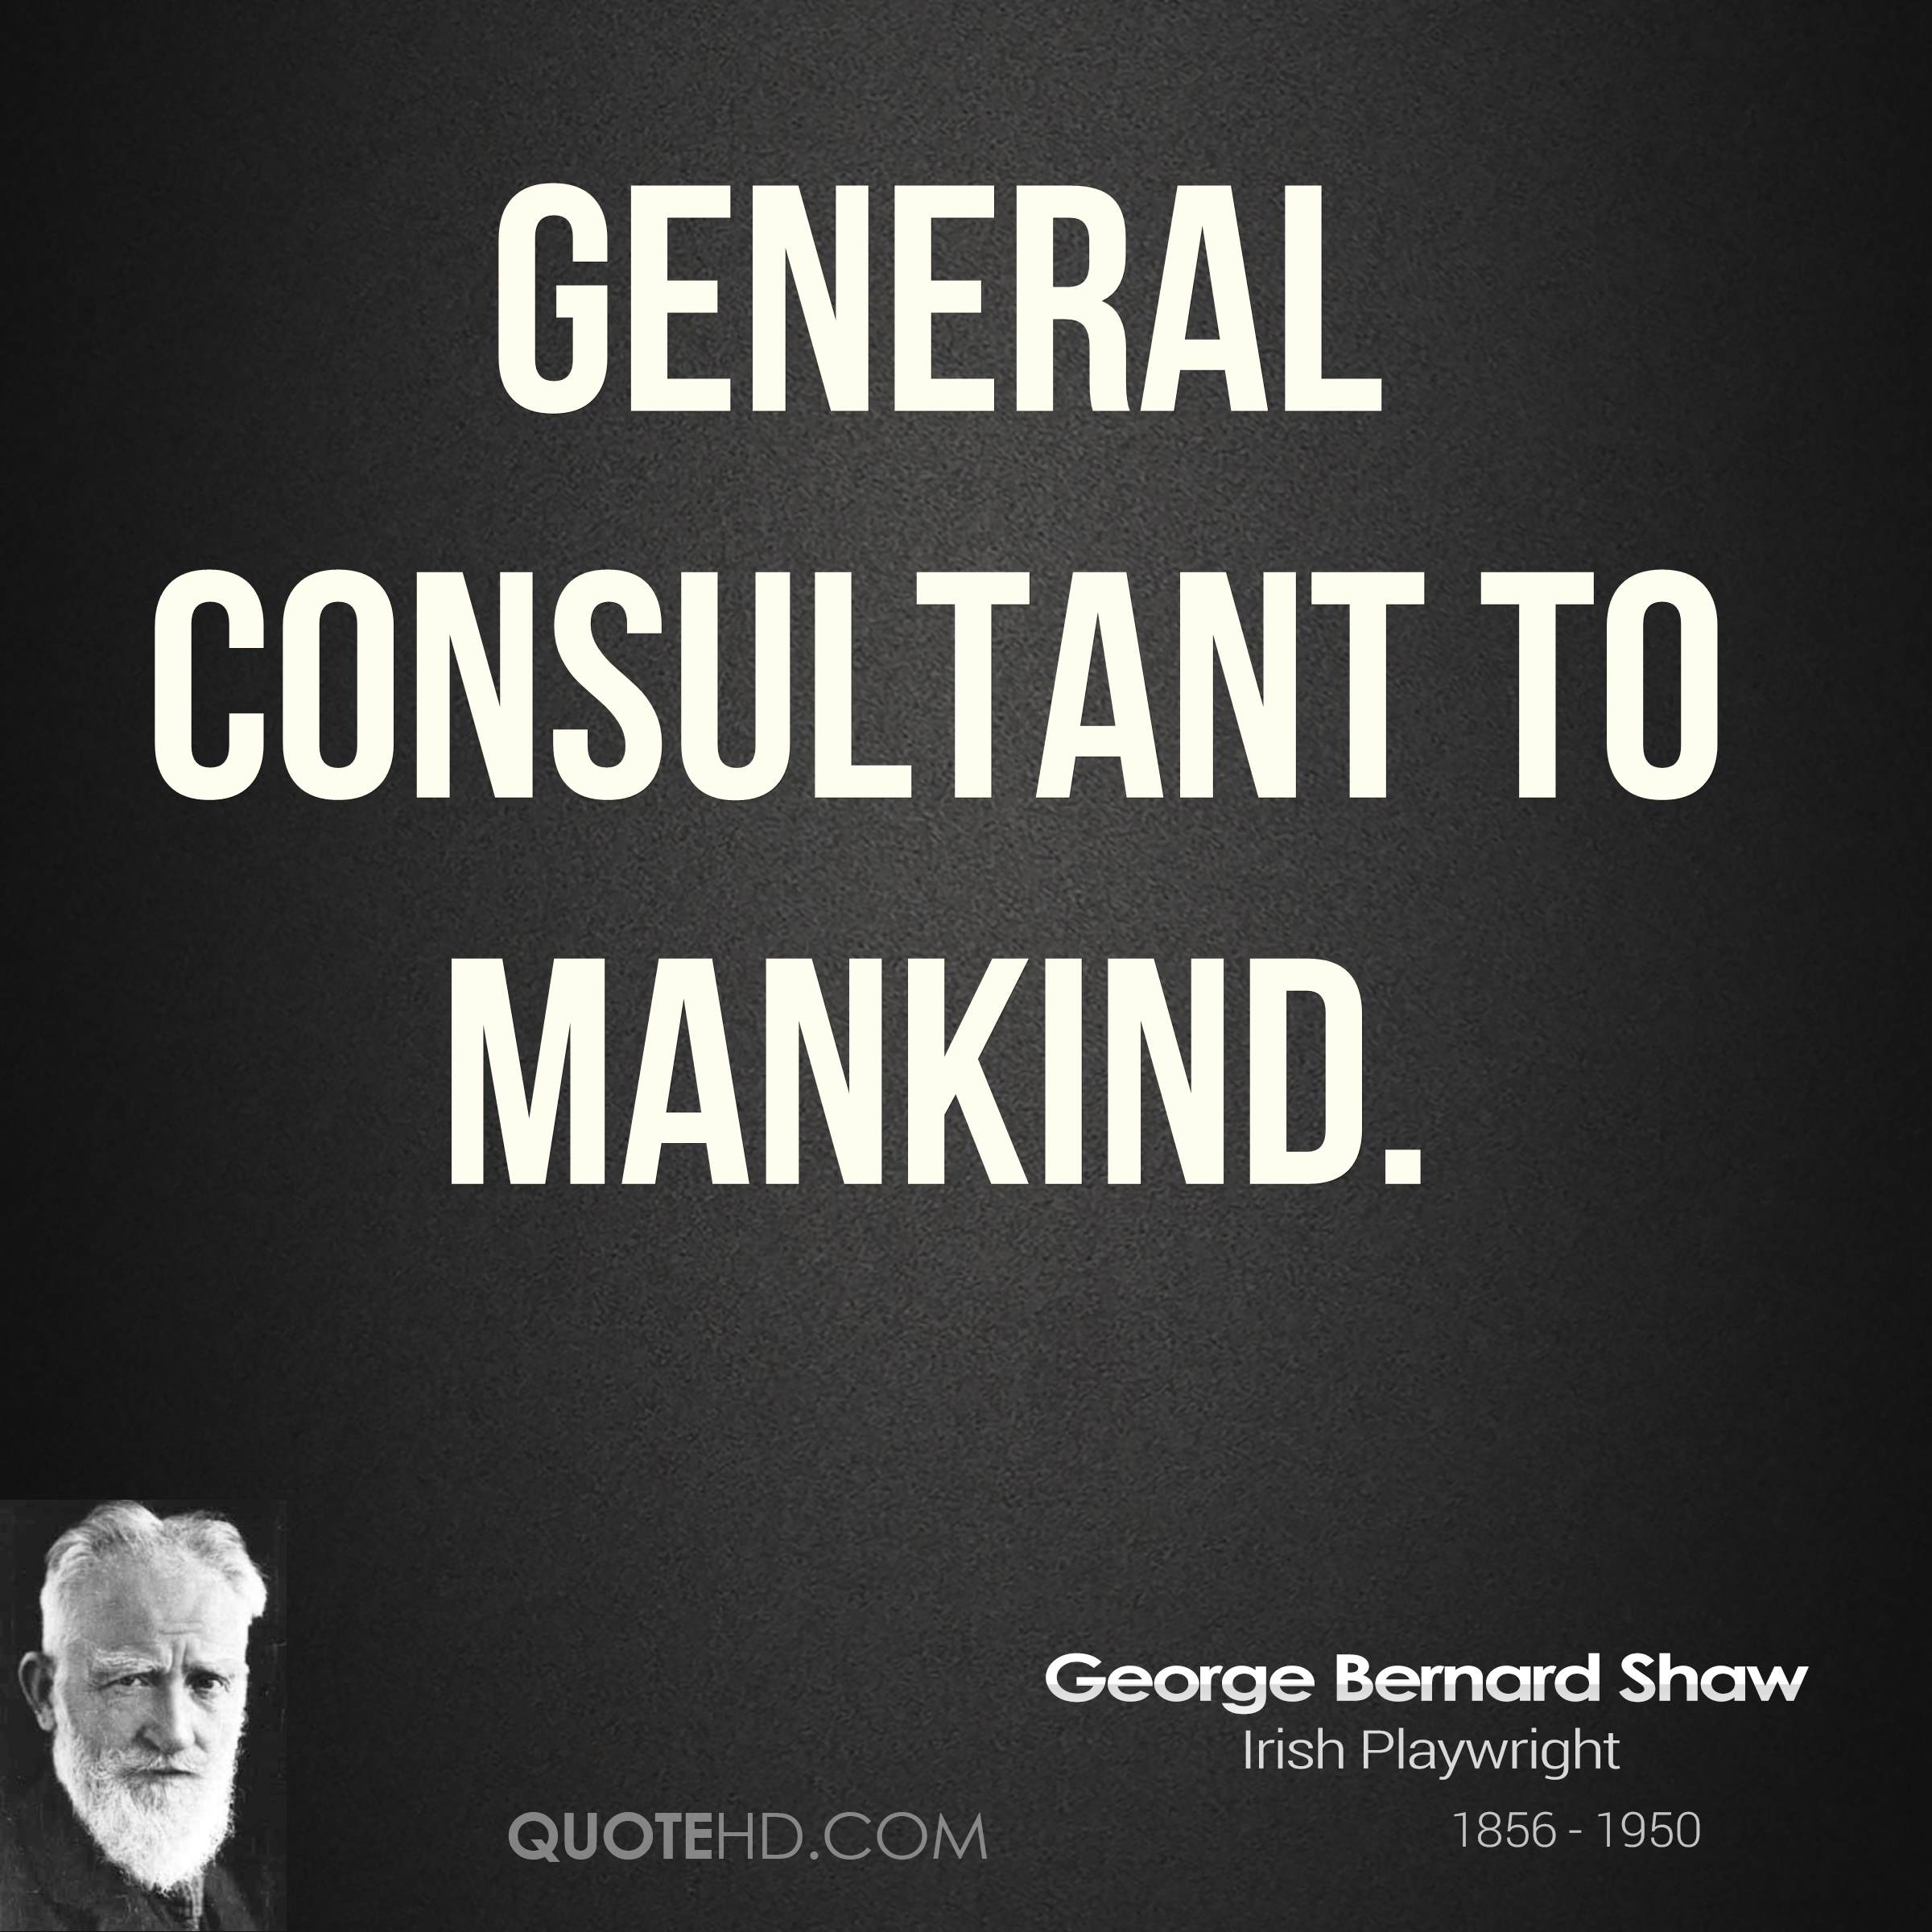 General consultant to mankind.